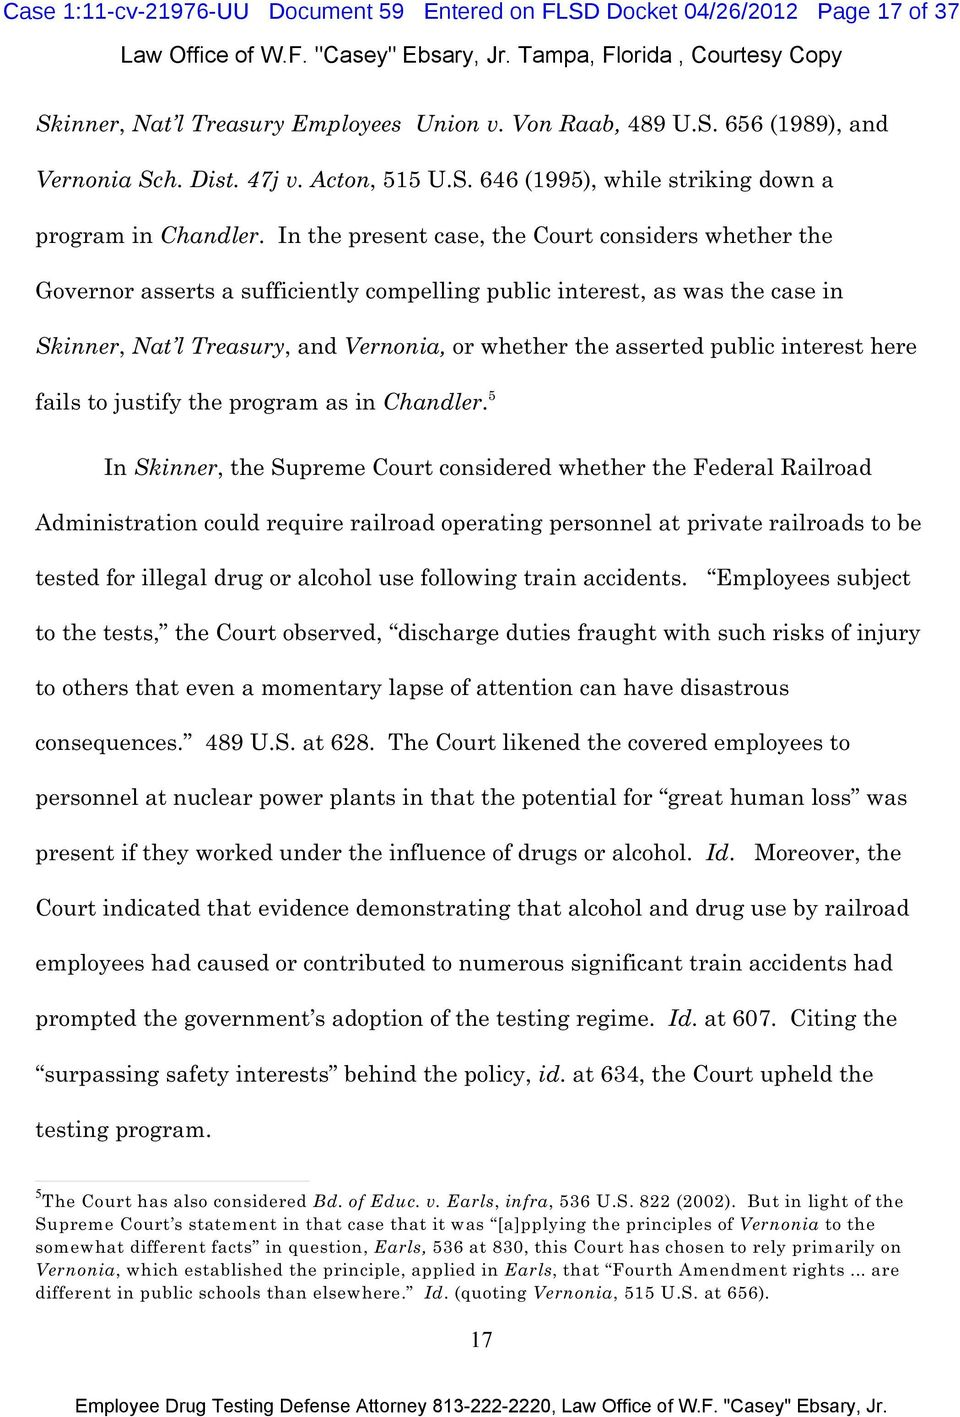 In the present case, the Court considers whether the Governor asserts a sufficiently compelling public interest, as was the case in Skinner, Nat l Treasury, and Vernonia, or whether the asserted